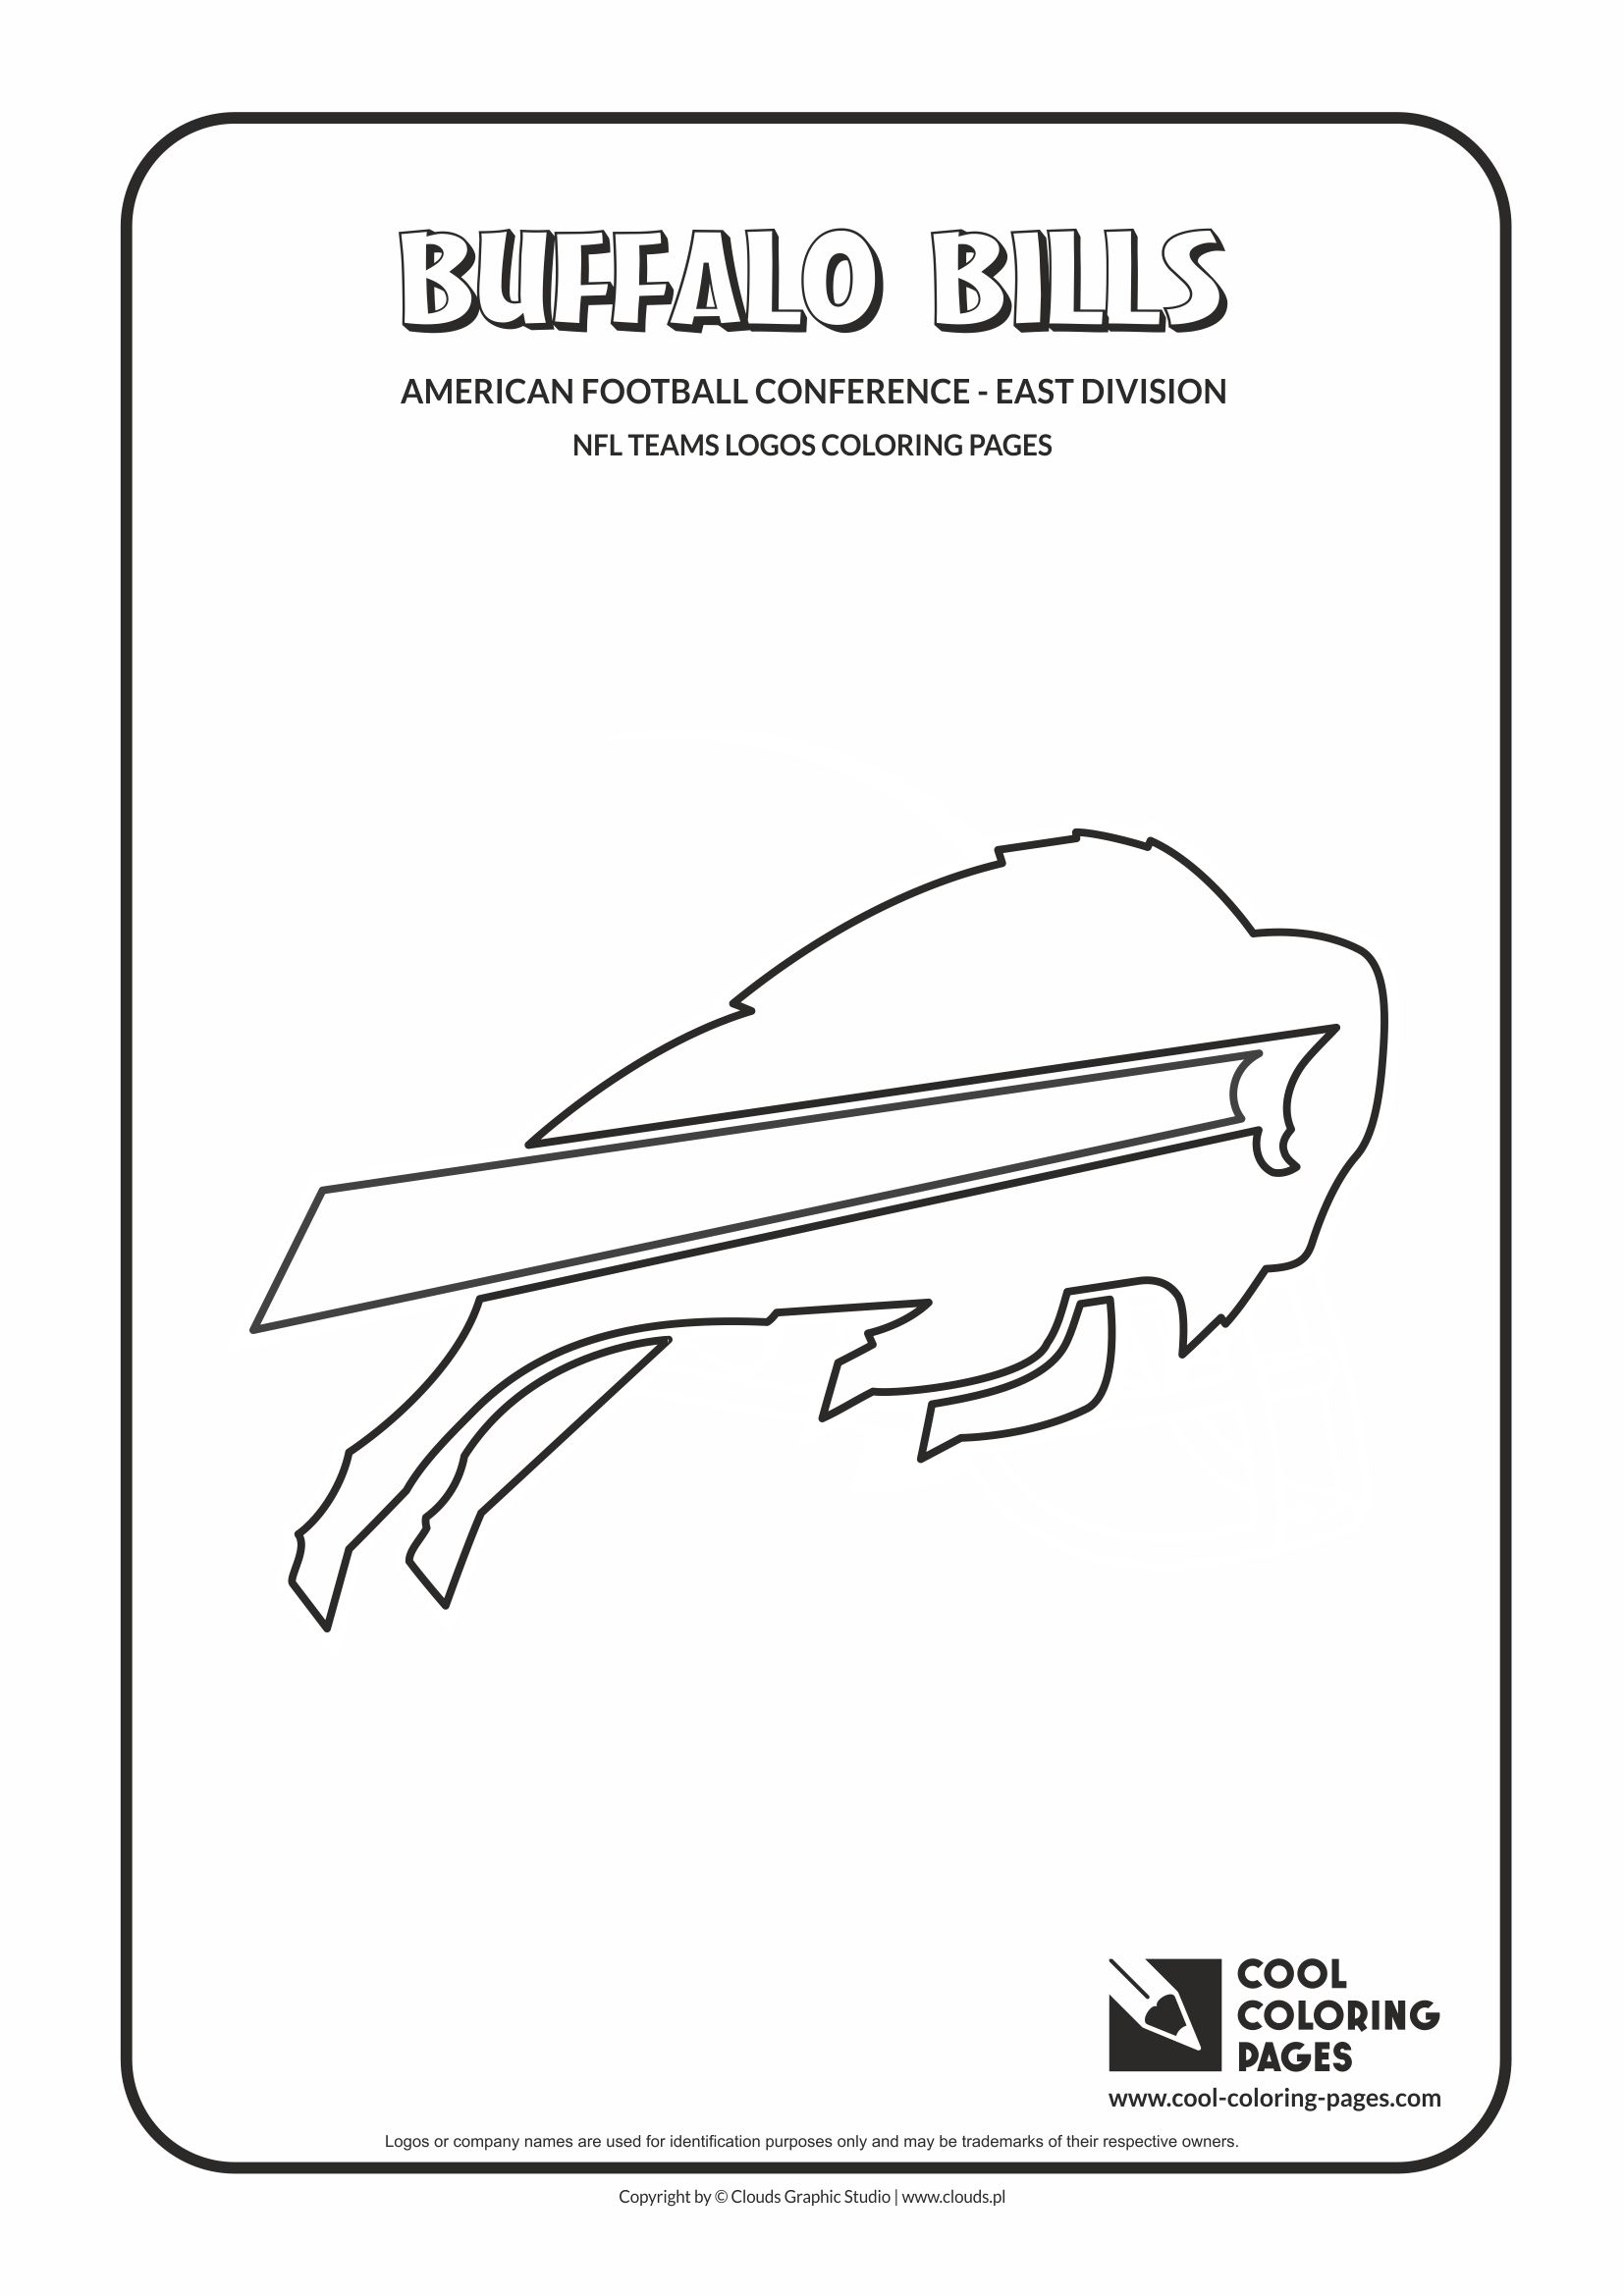 Buffalo Bills Coloring Pages : buffalo, bills, coloring, pages, Coloring, Pages, Buffalo, Bills, American, Football, Teams, Logos, Educational, Activities